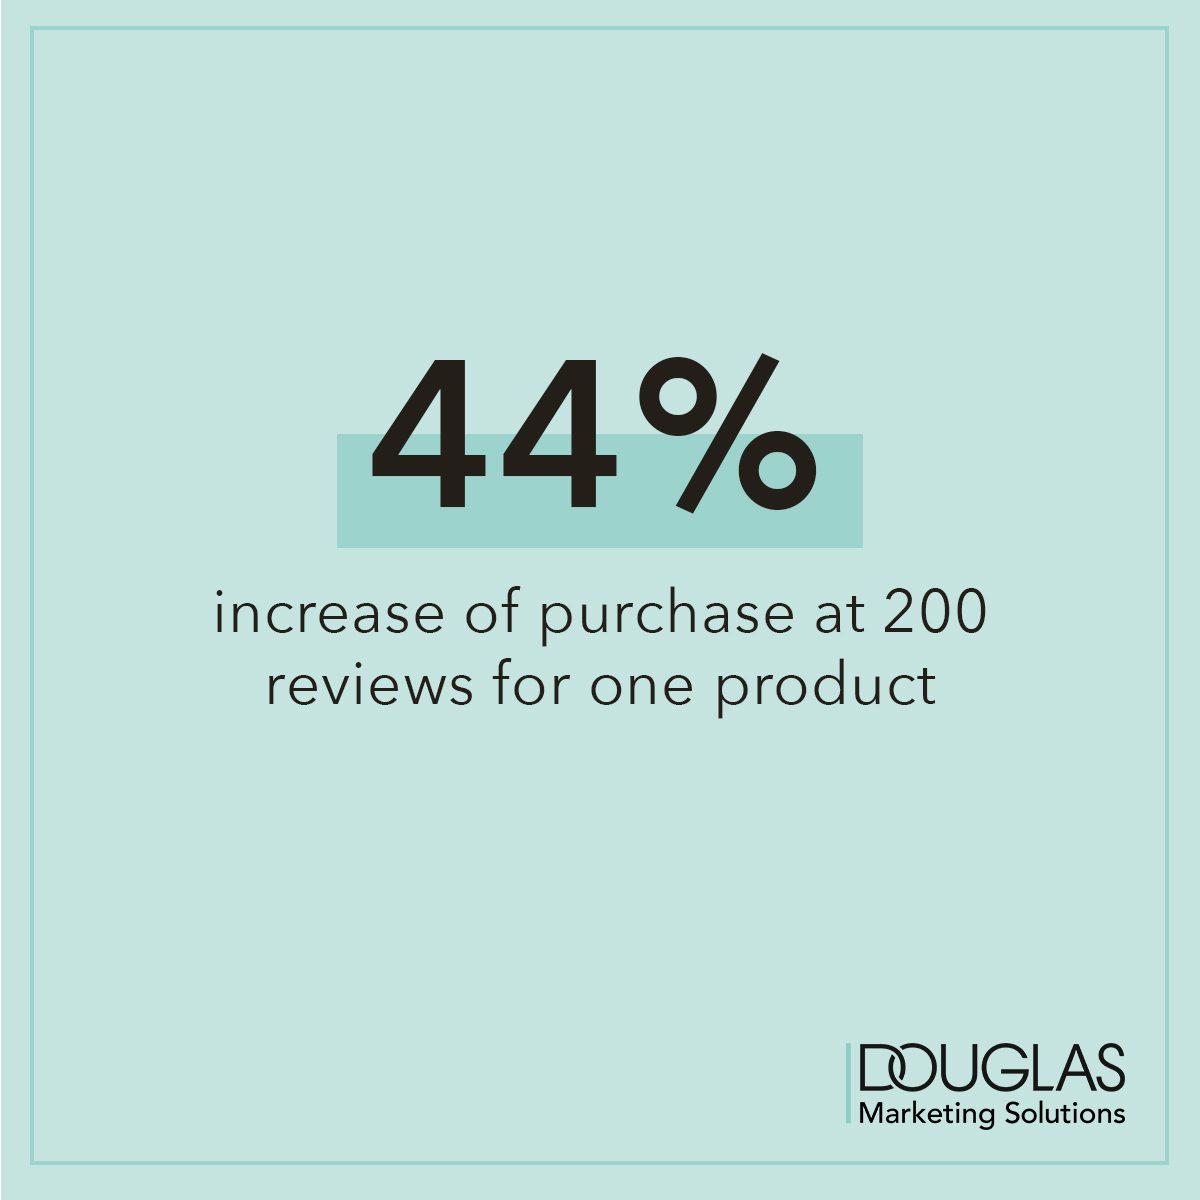 44% increase of purchase at 200 reviews for one product